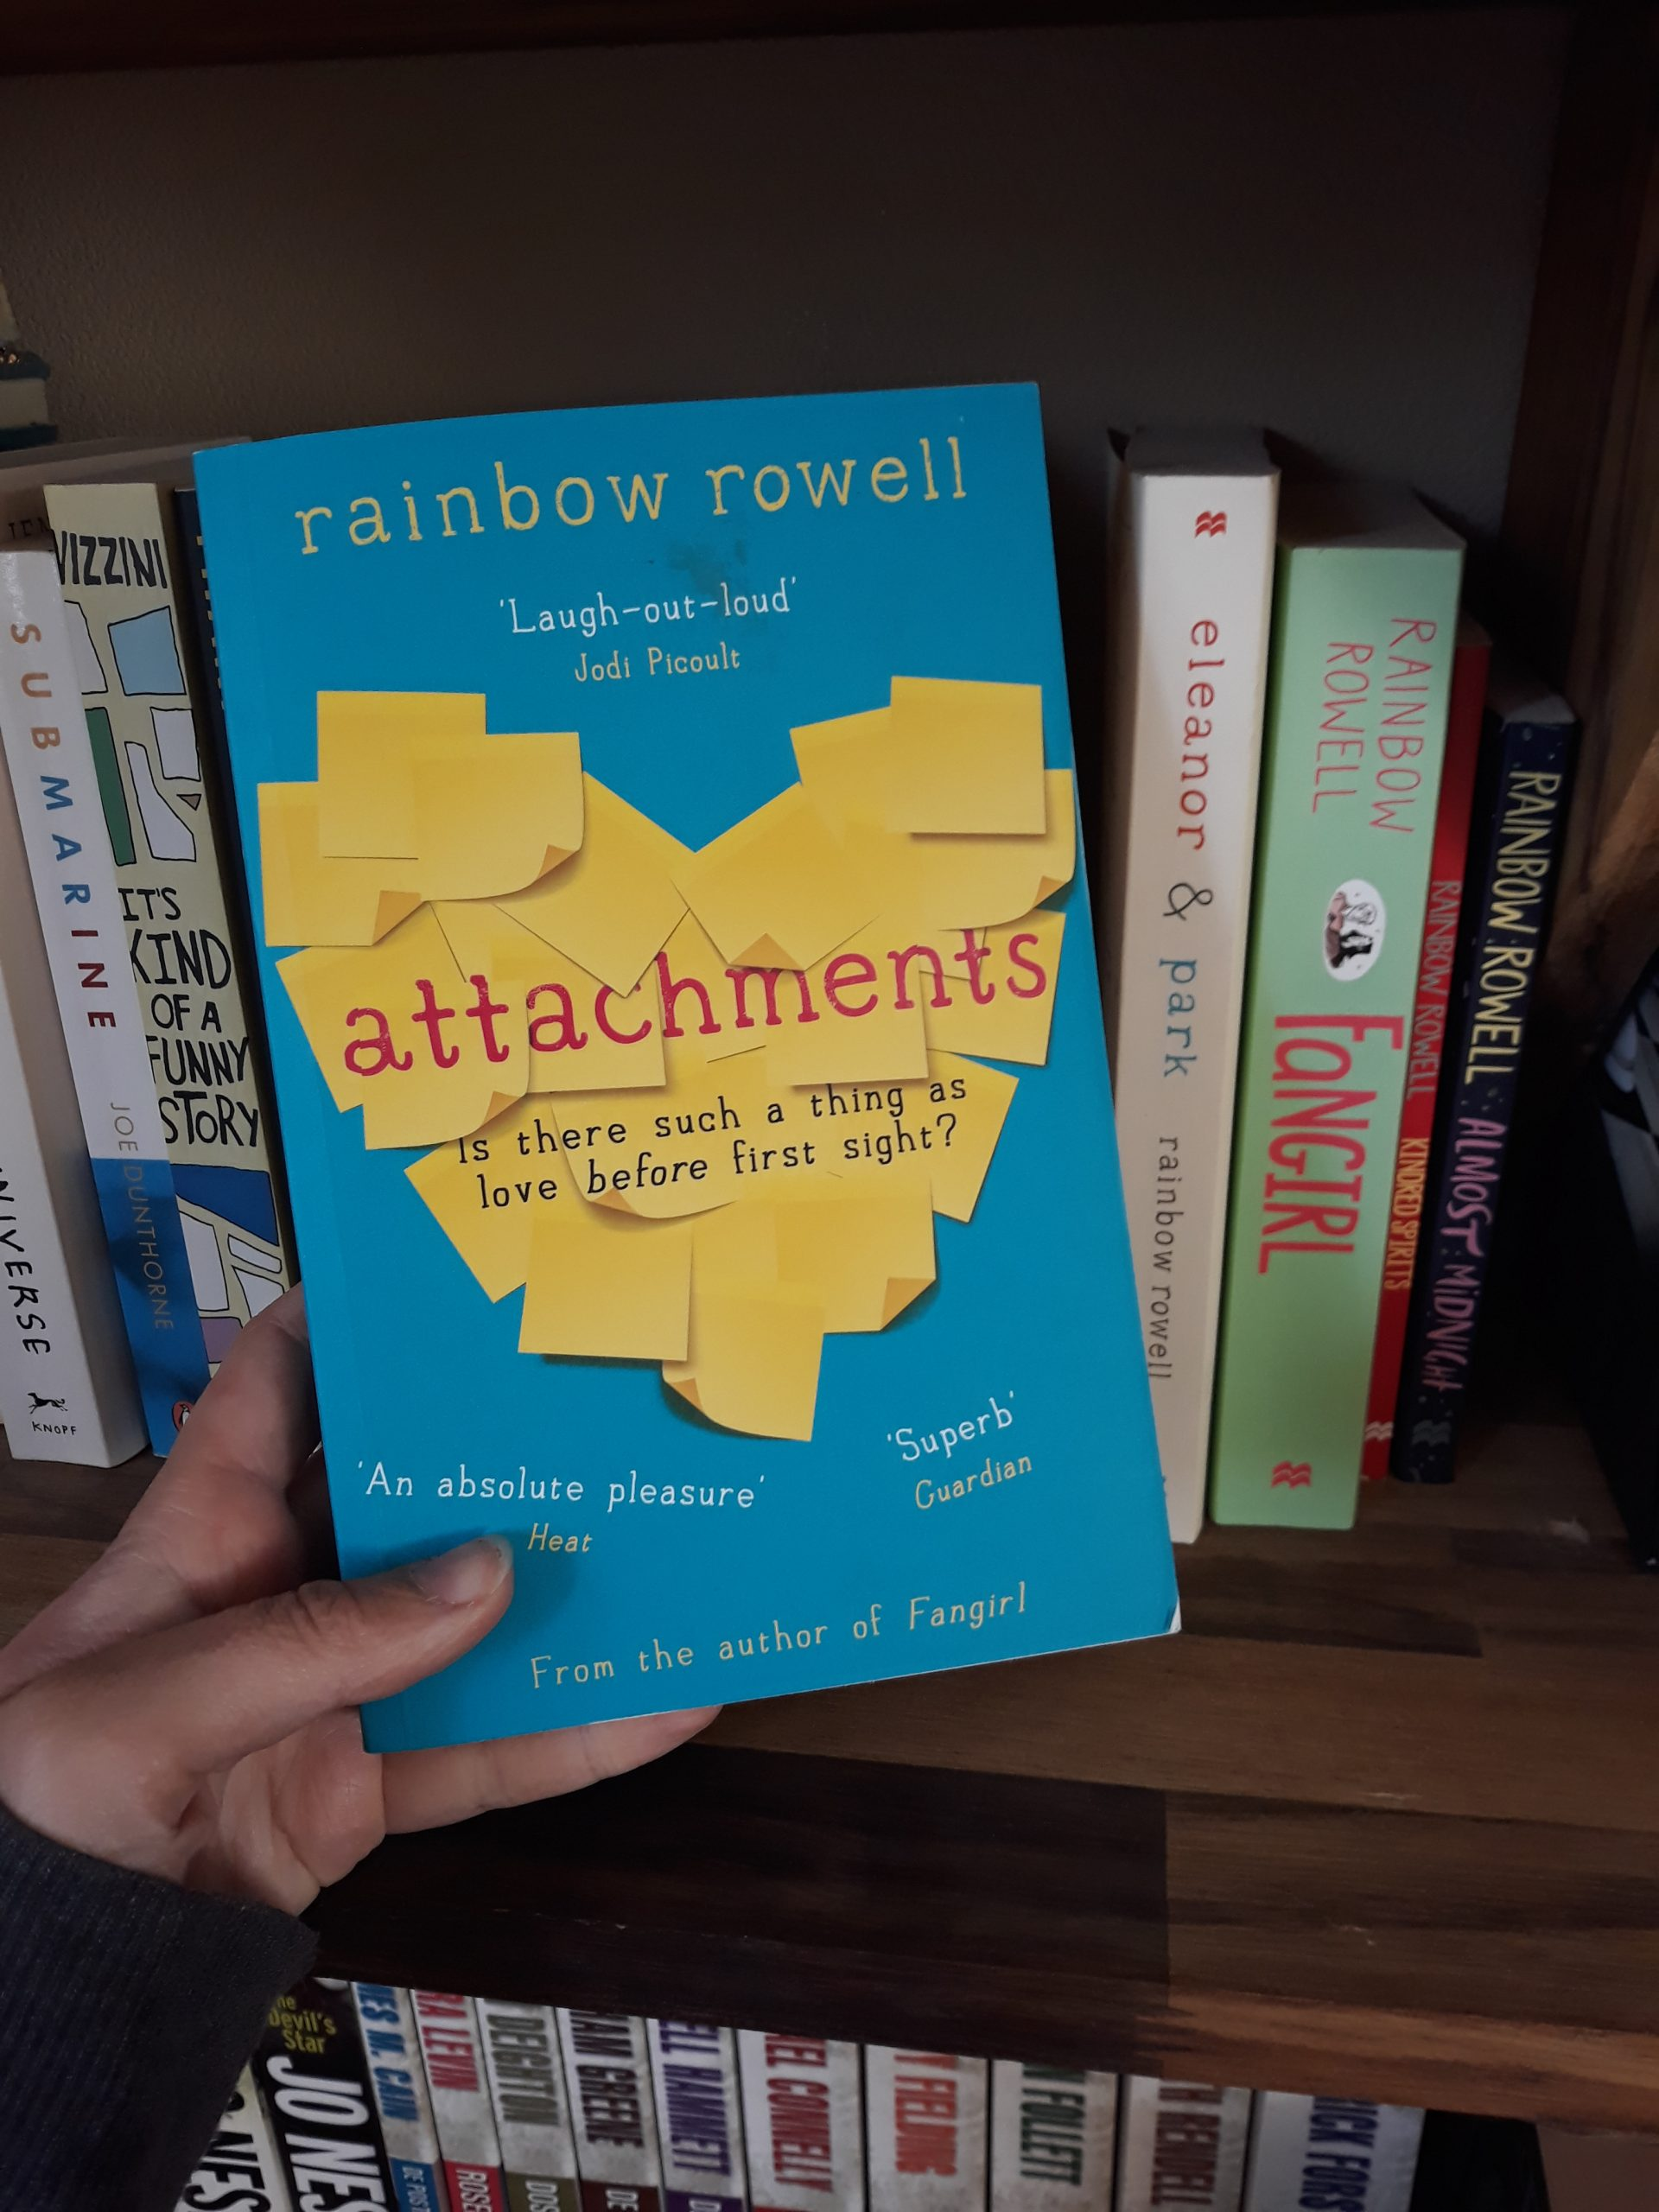 Boekrecensie: Attachments – Rainbow Rowell